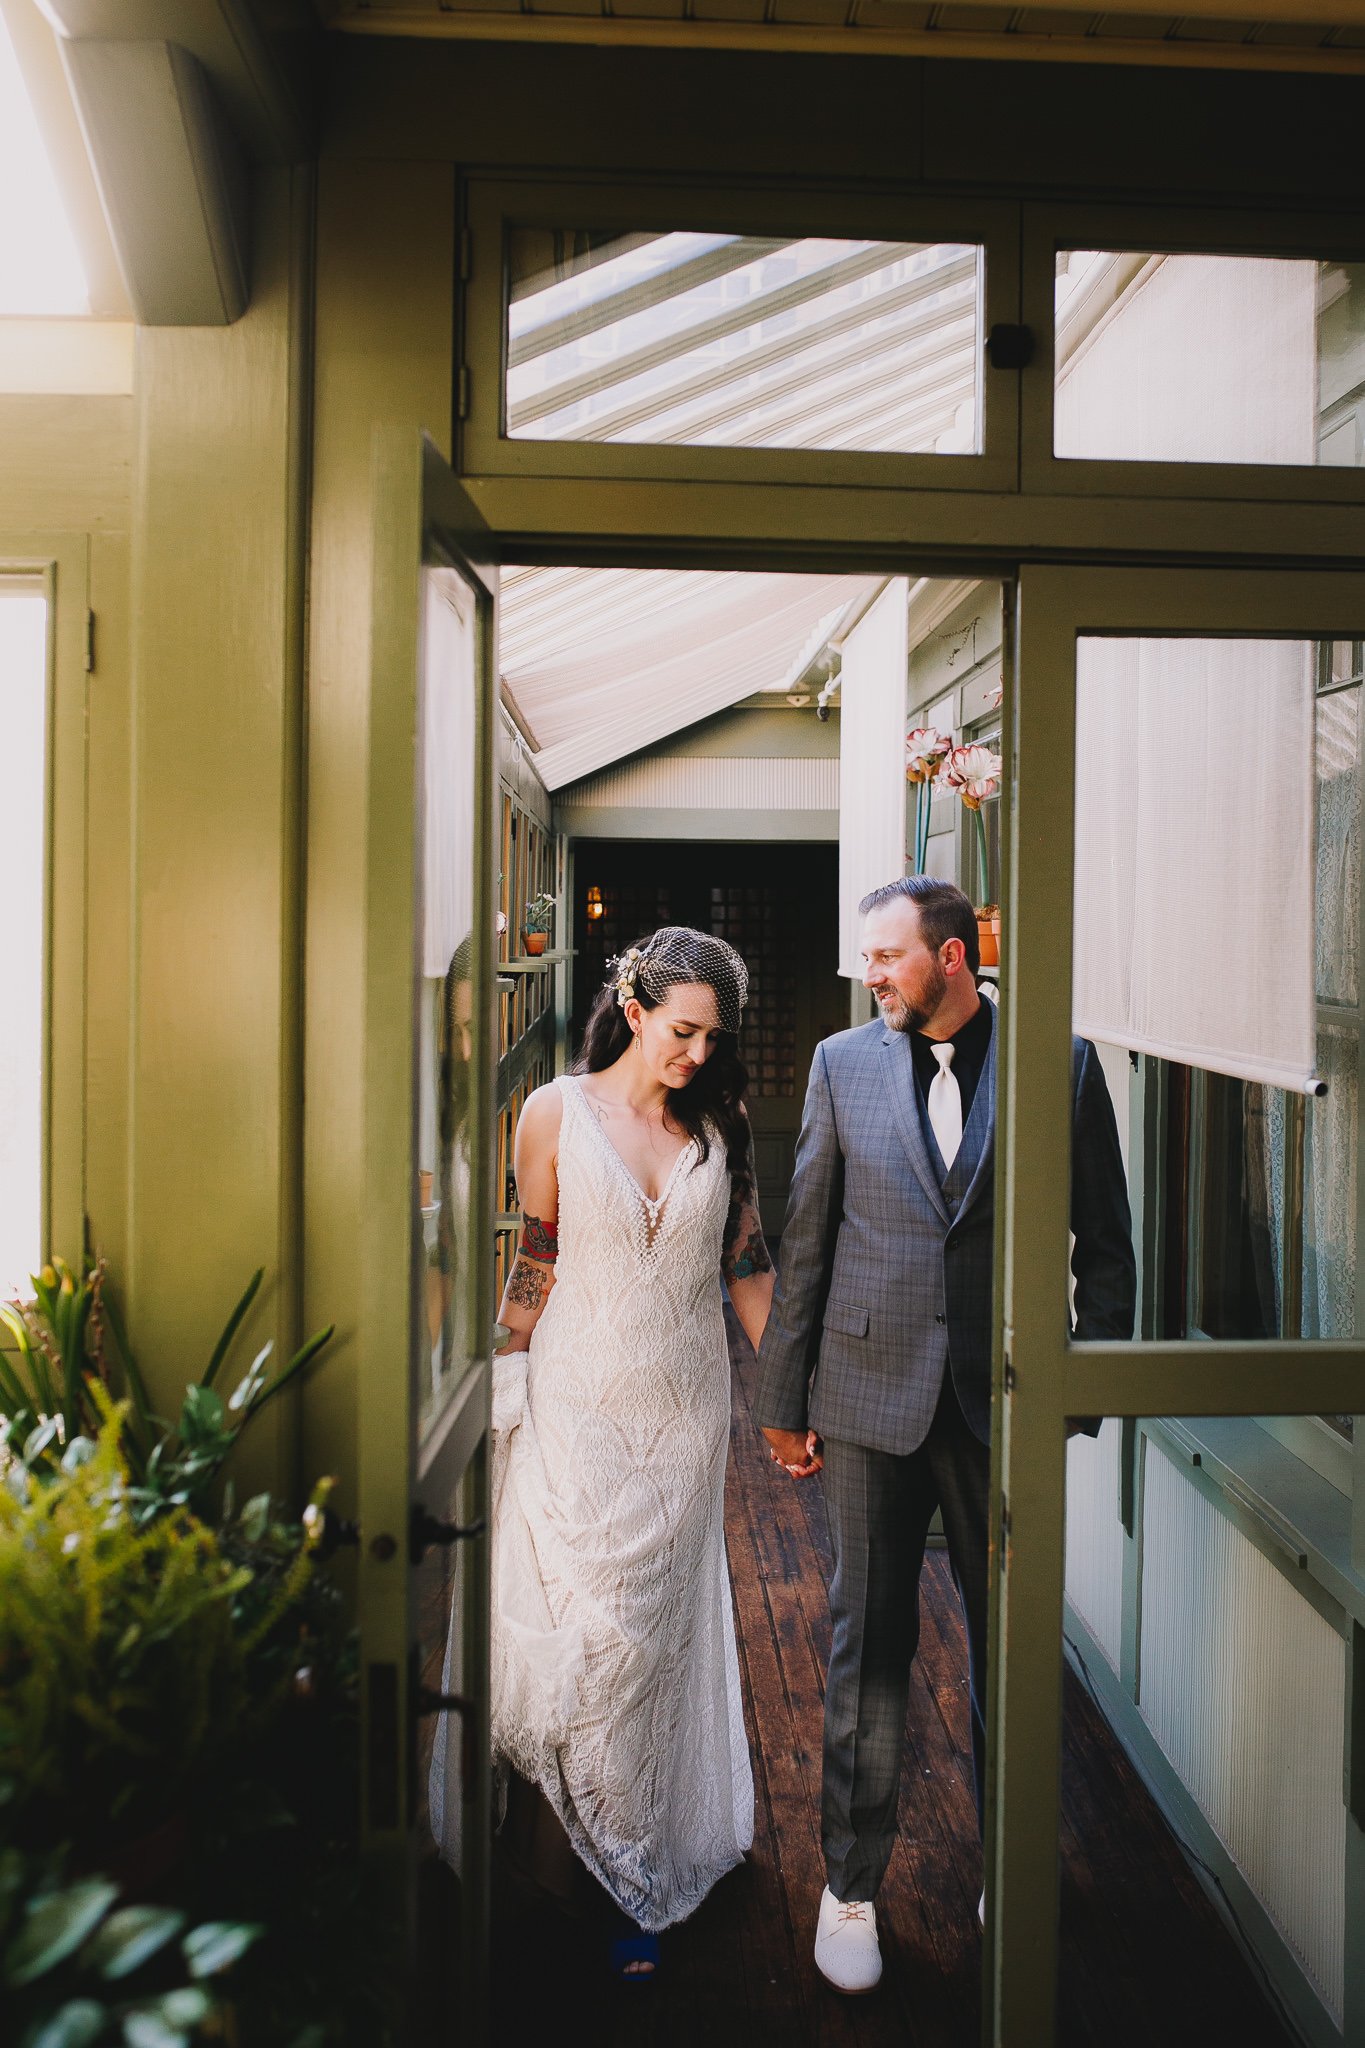 Archer Inspired Photography Sara and Aaron Winchester Mystery House NorCal San Jose California Wedding Photographer-306.jpg